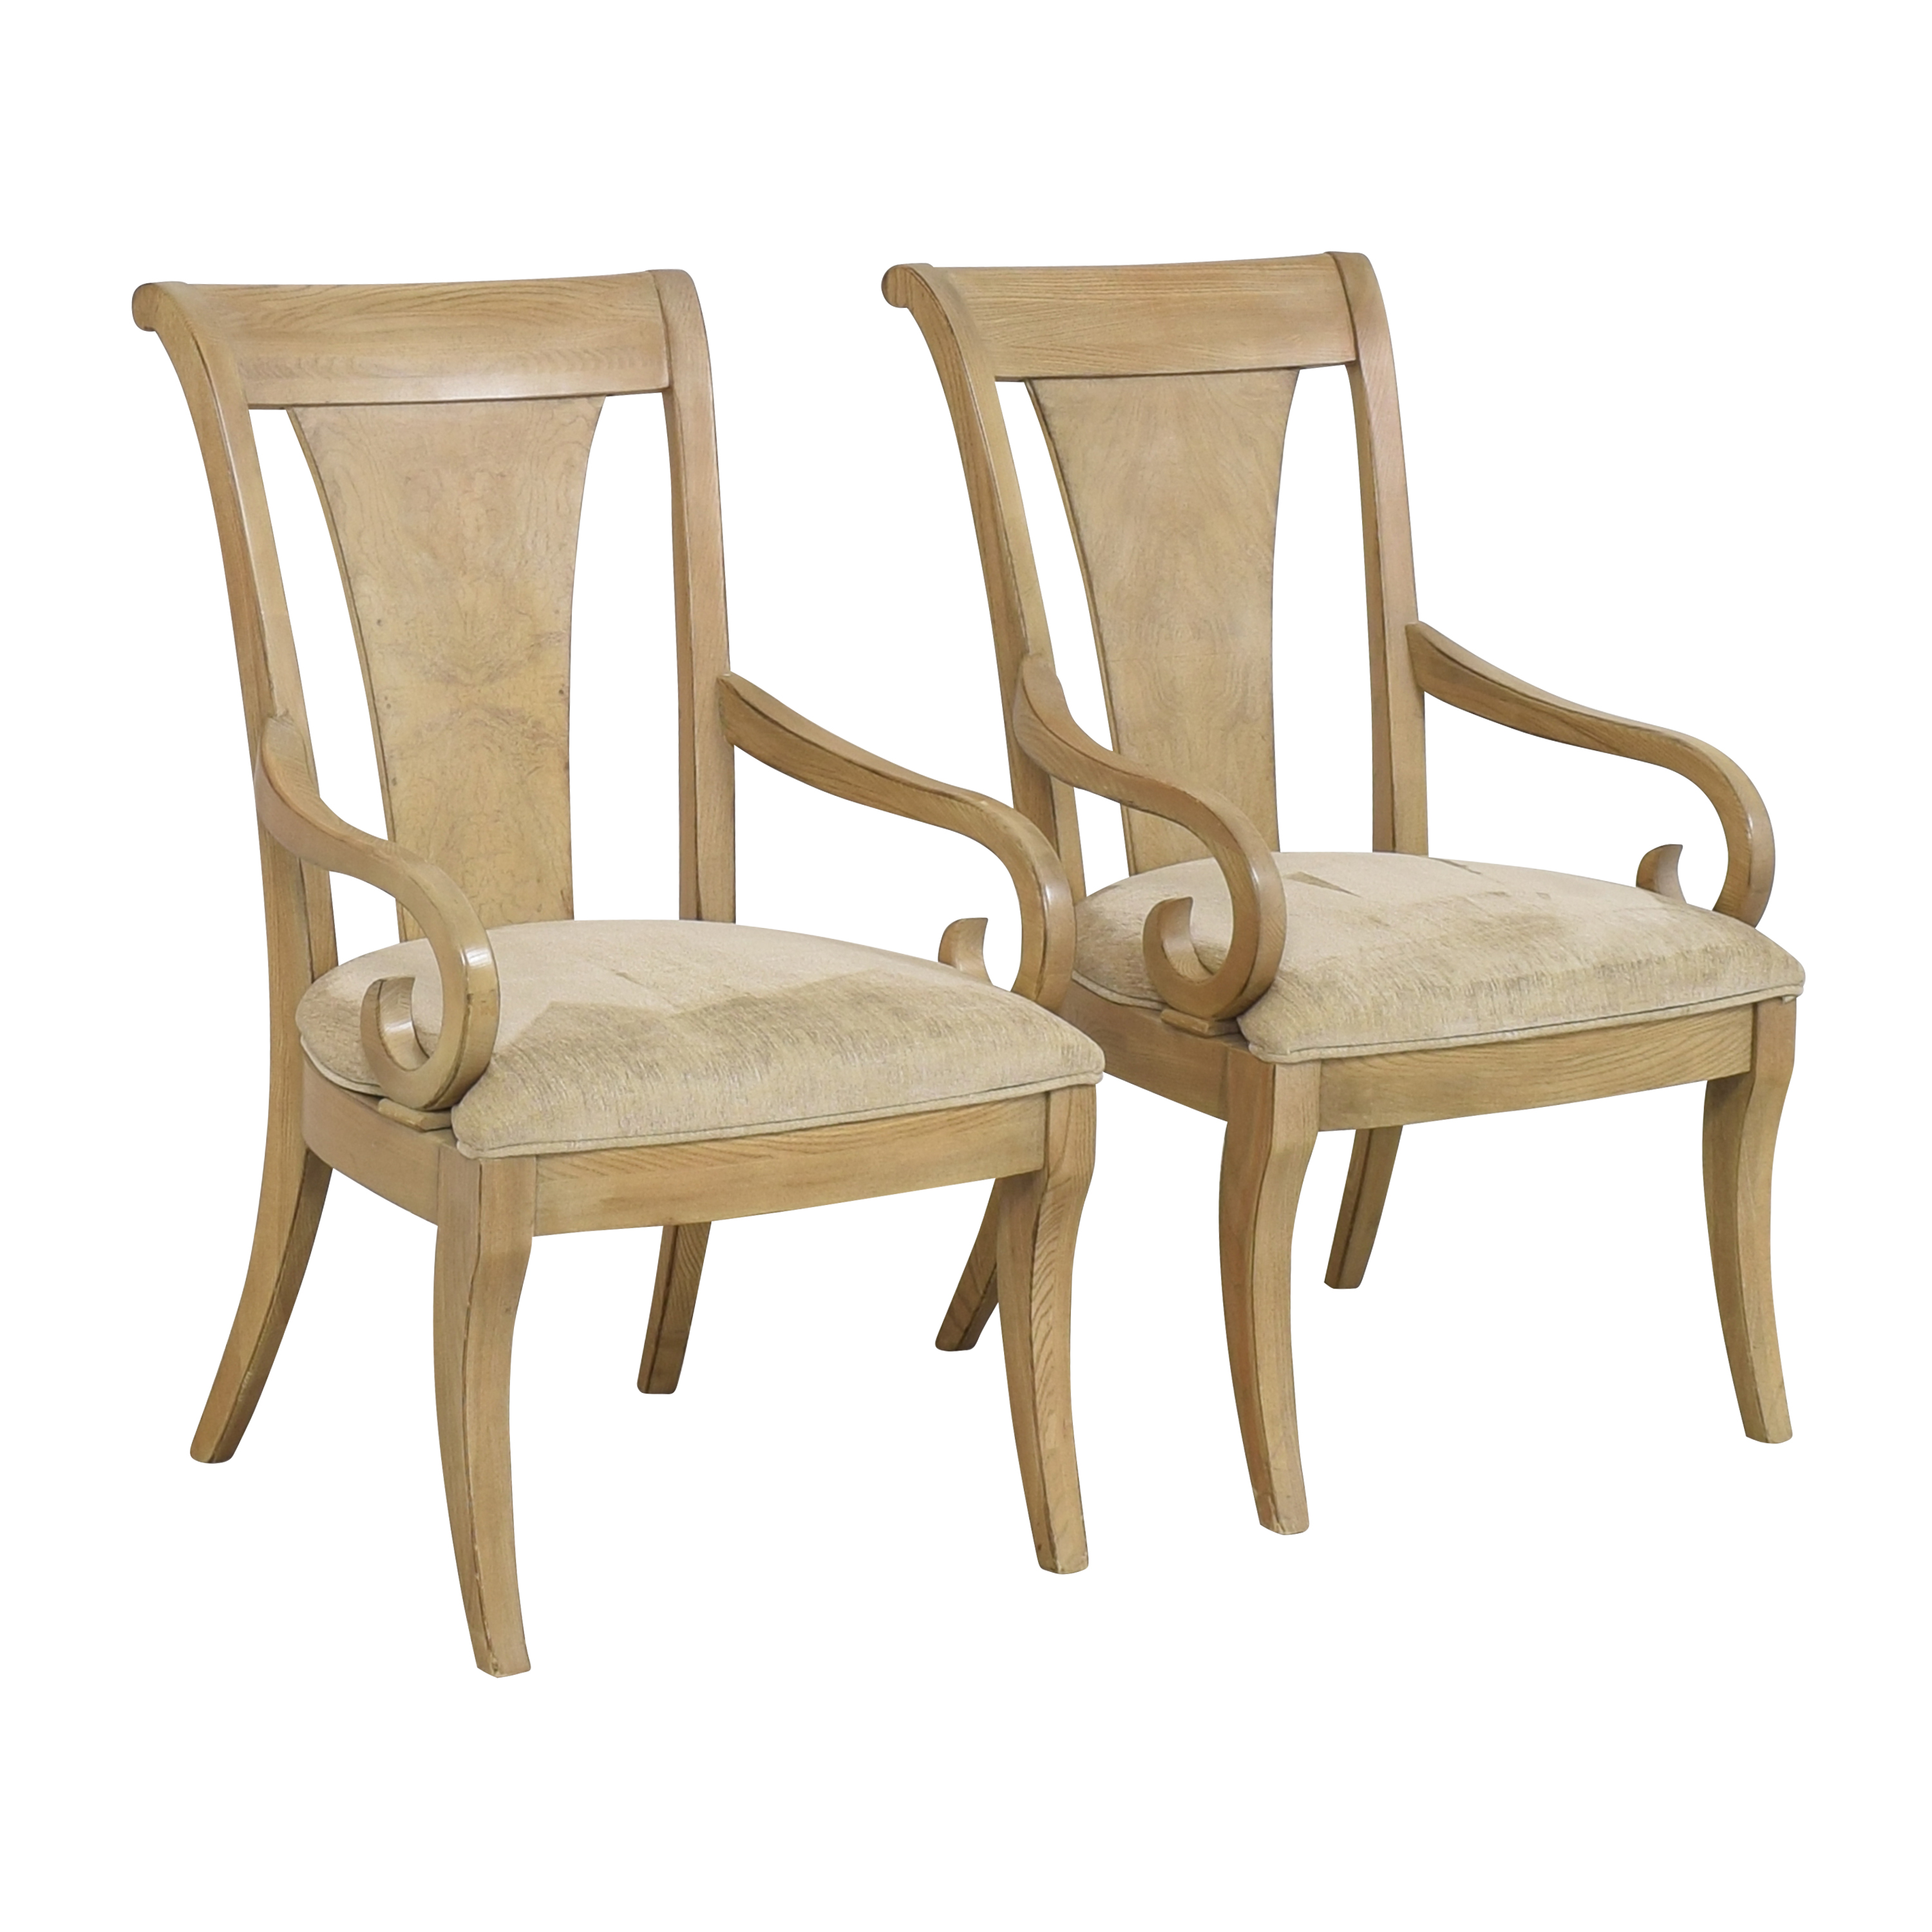 Drexel Heritage Drexel Heritage Dining Arm Chairs on sale